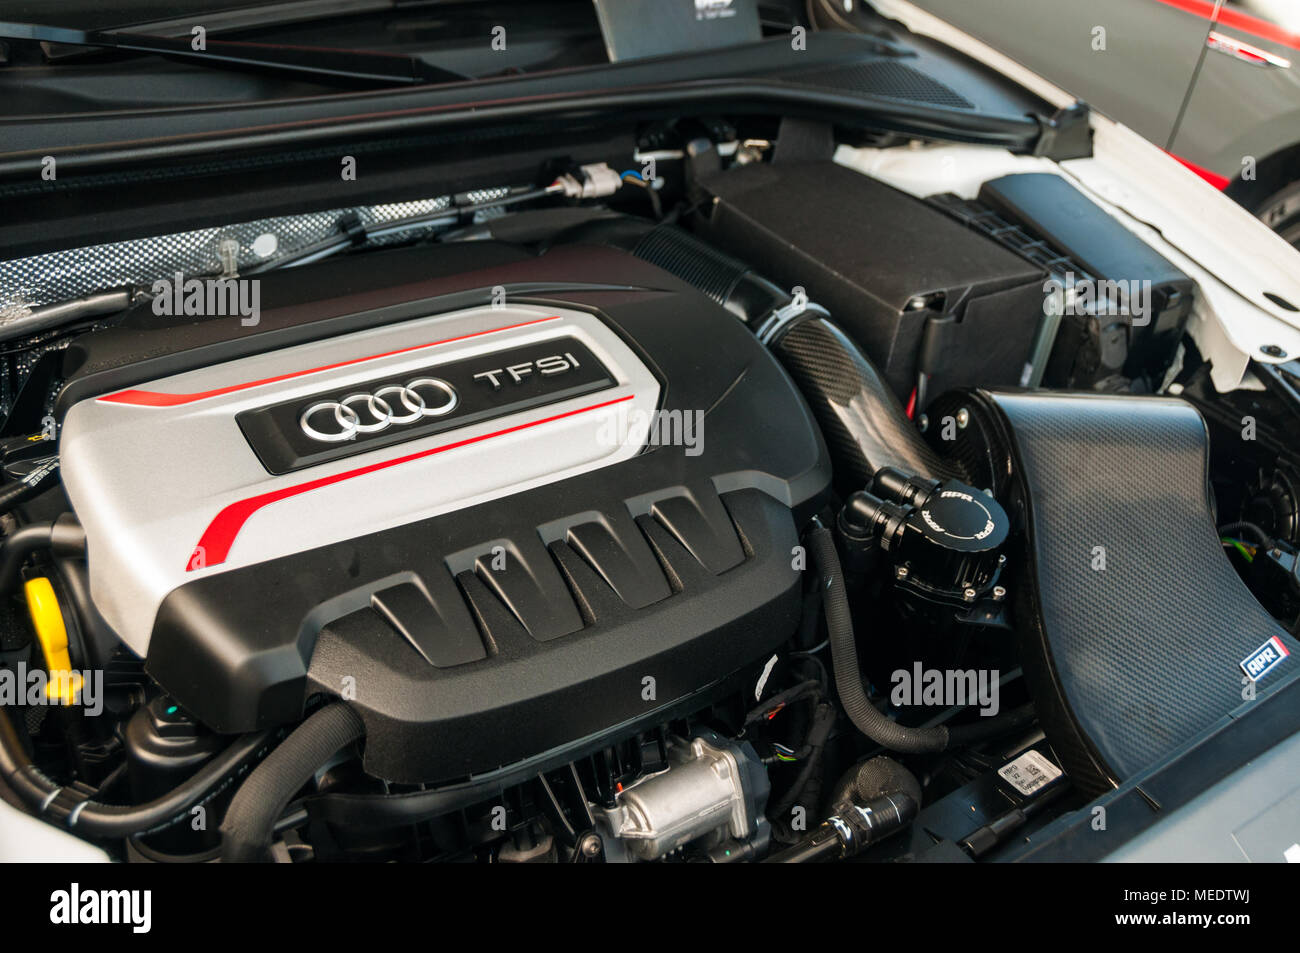 Tuned Audi TFSI engine as displayed by RPM Tuning at an Audi Sport event at the Shanghai International Circuit. - Stock Image